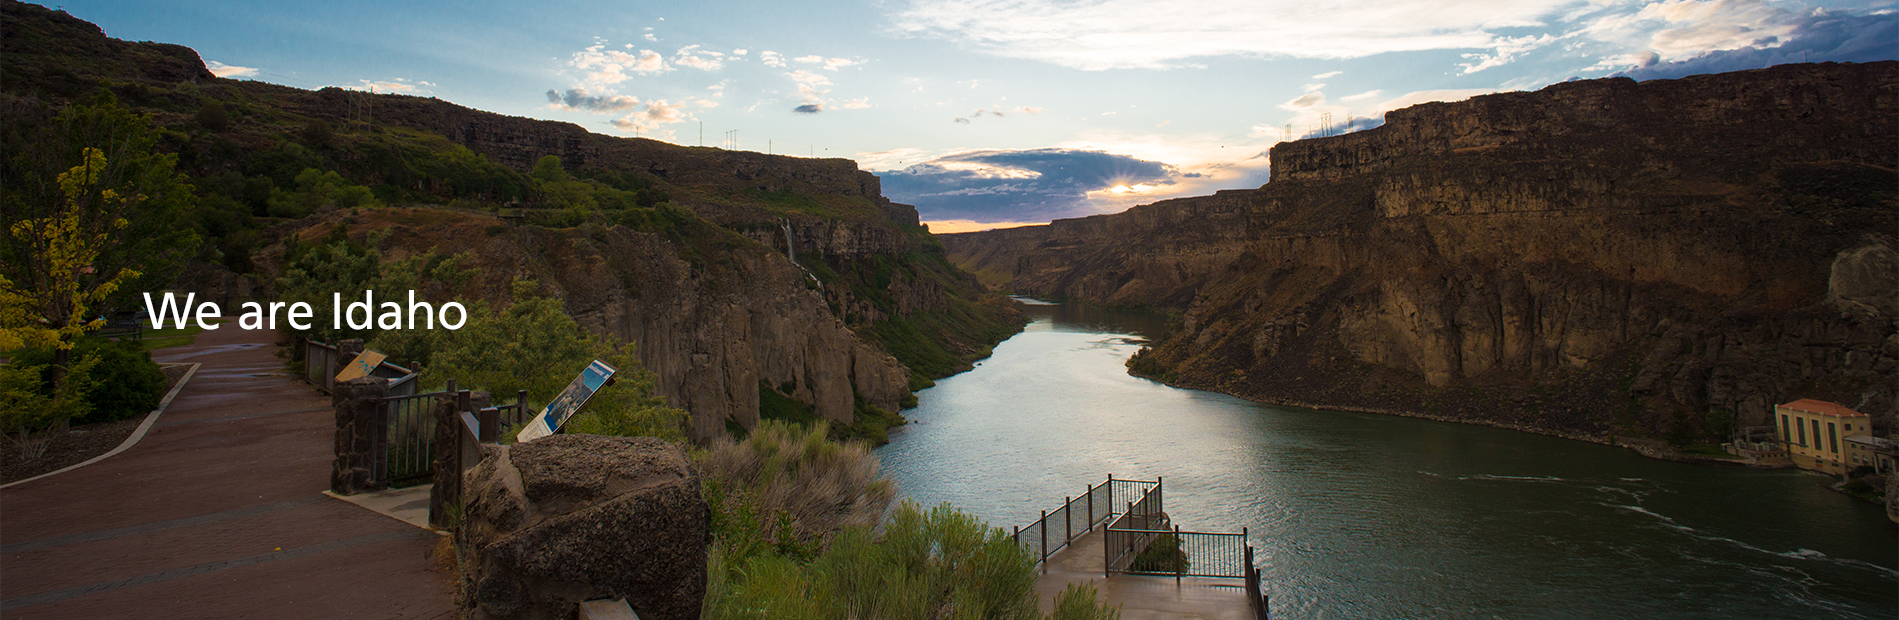 We are Idaho. View of the canyon beyond Shoshone Falls at sunset.